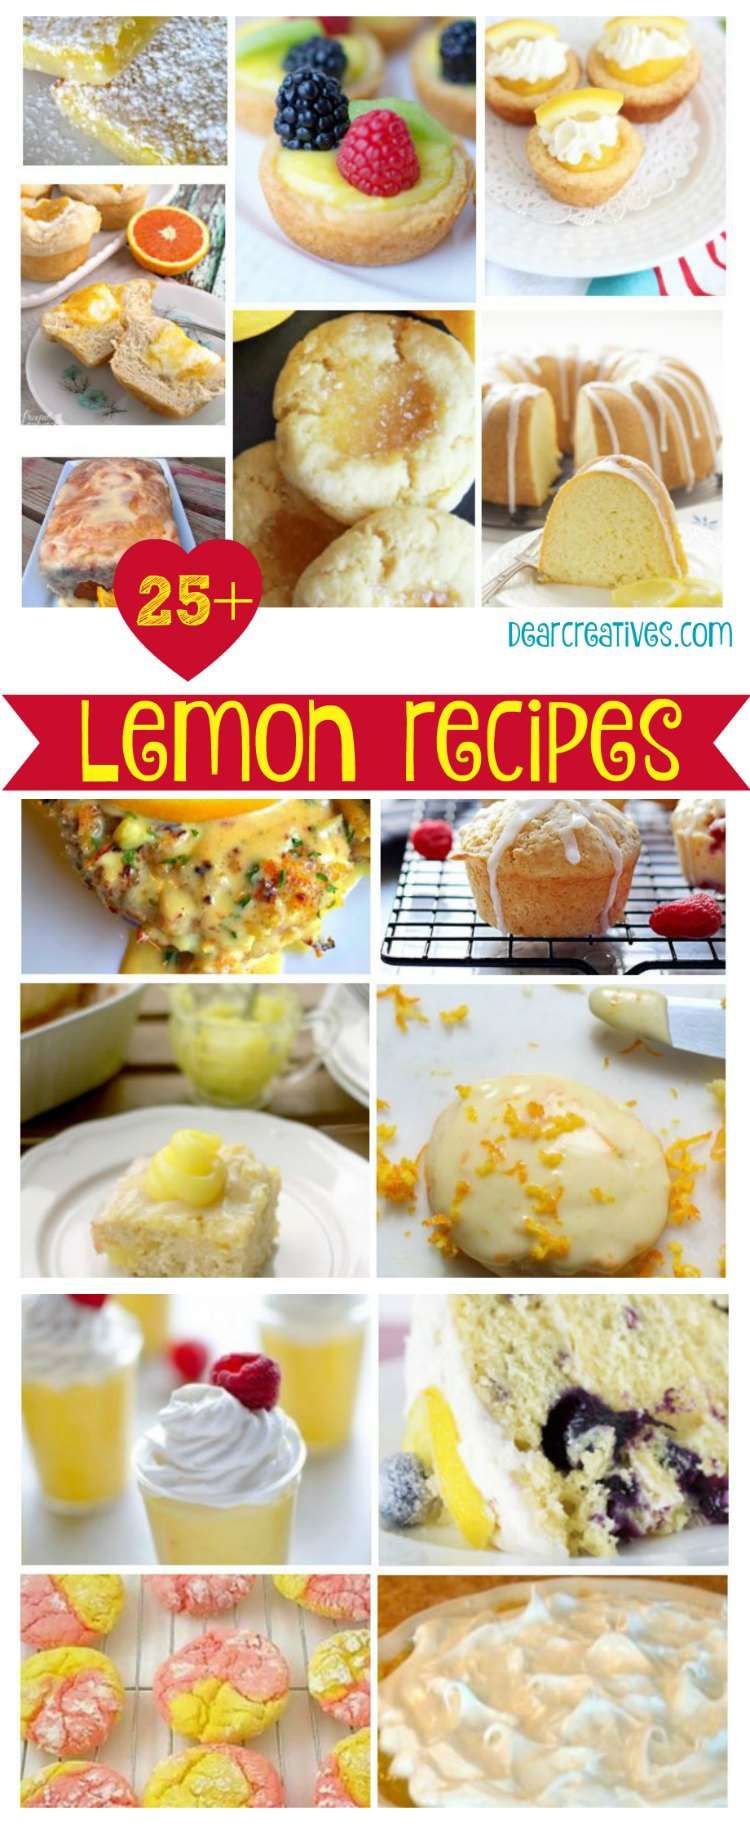 Calling All Lemon Lovers! Lemony Goodness 25+ Lemon Recipes You'll Want!